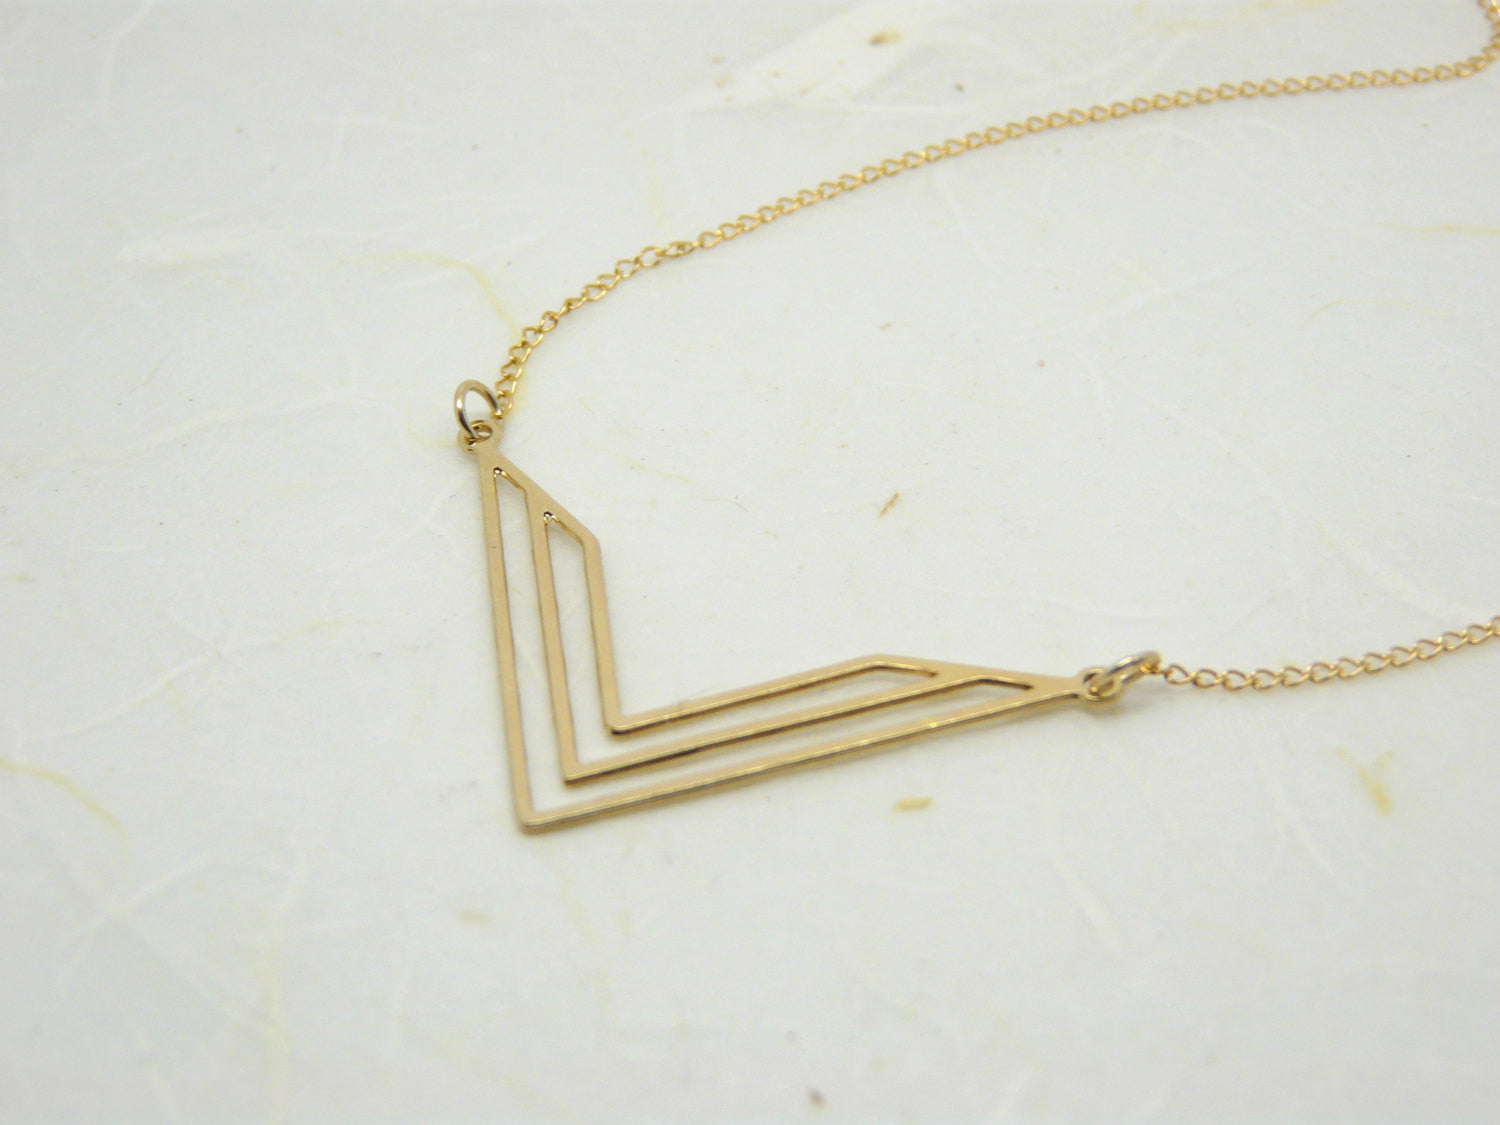 Chevron necklace - OpaLandJewelry